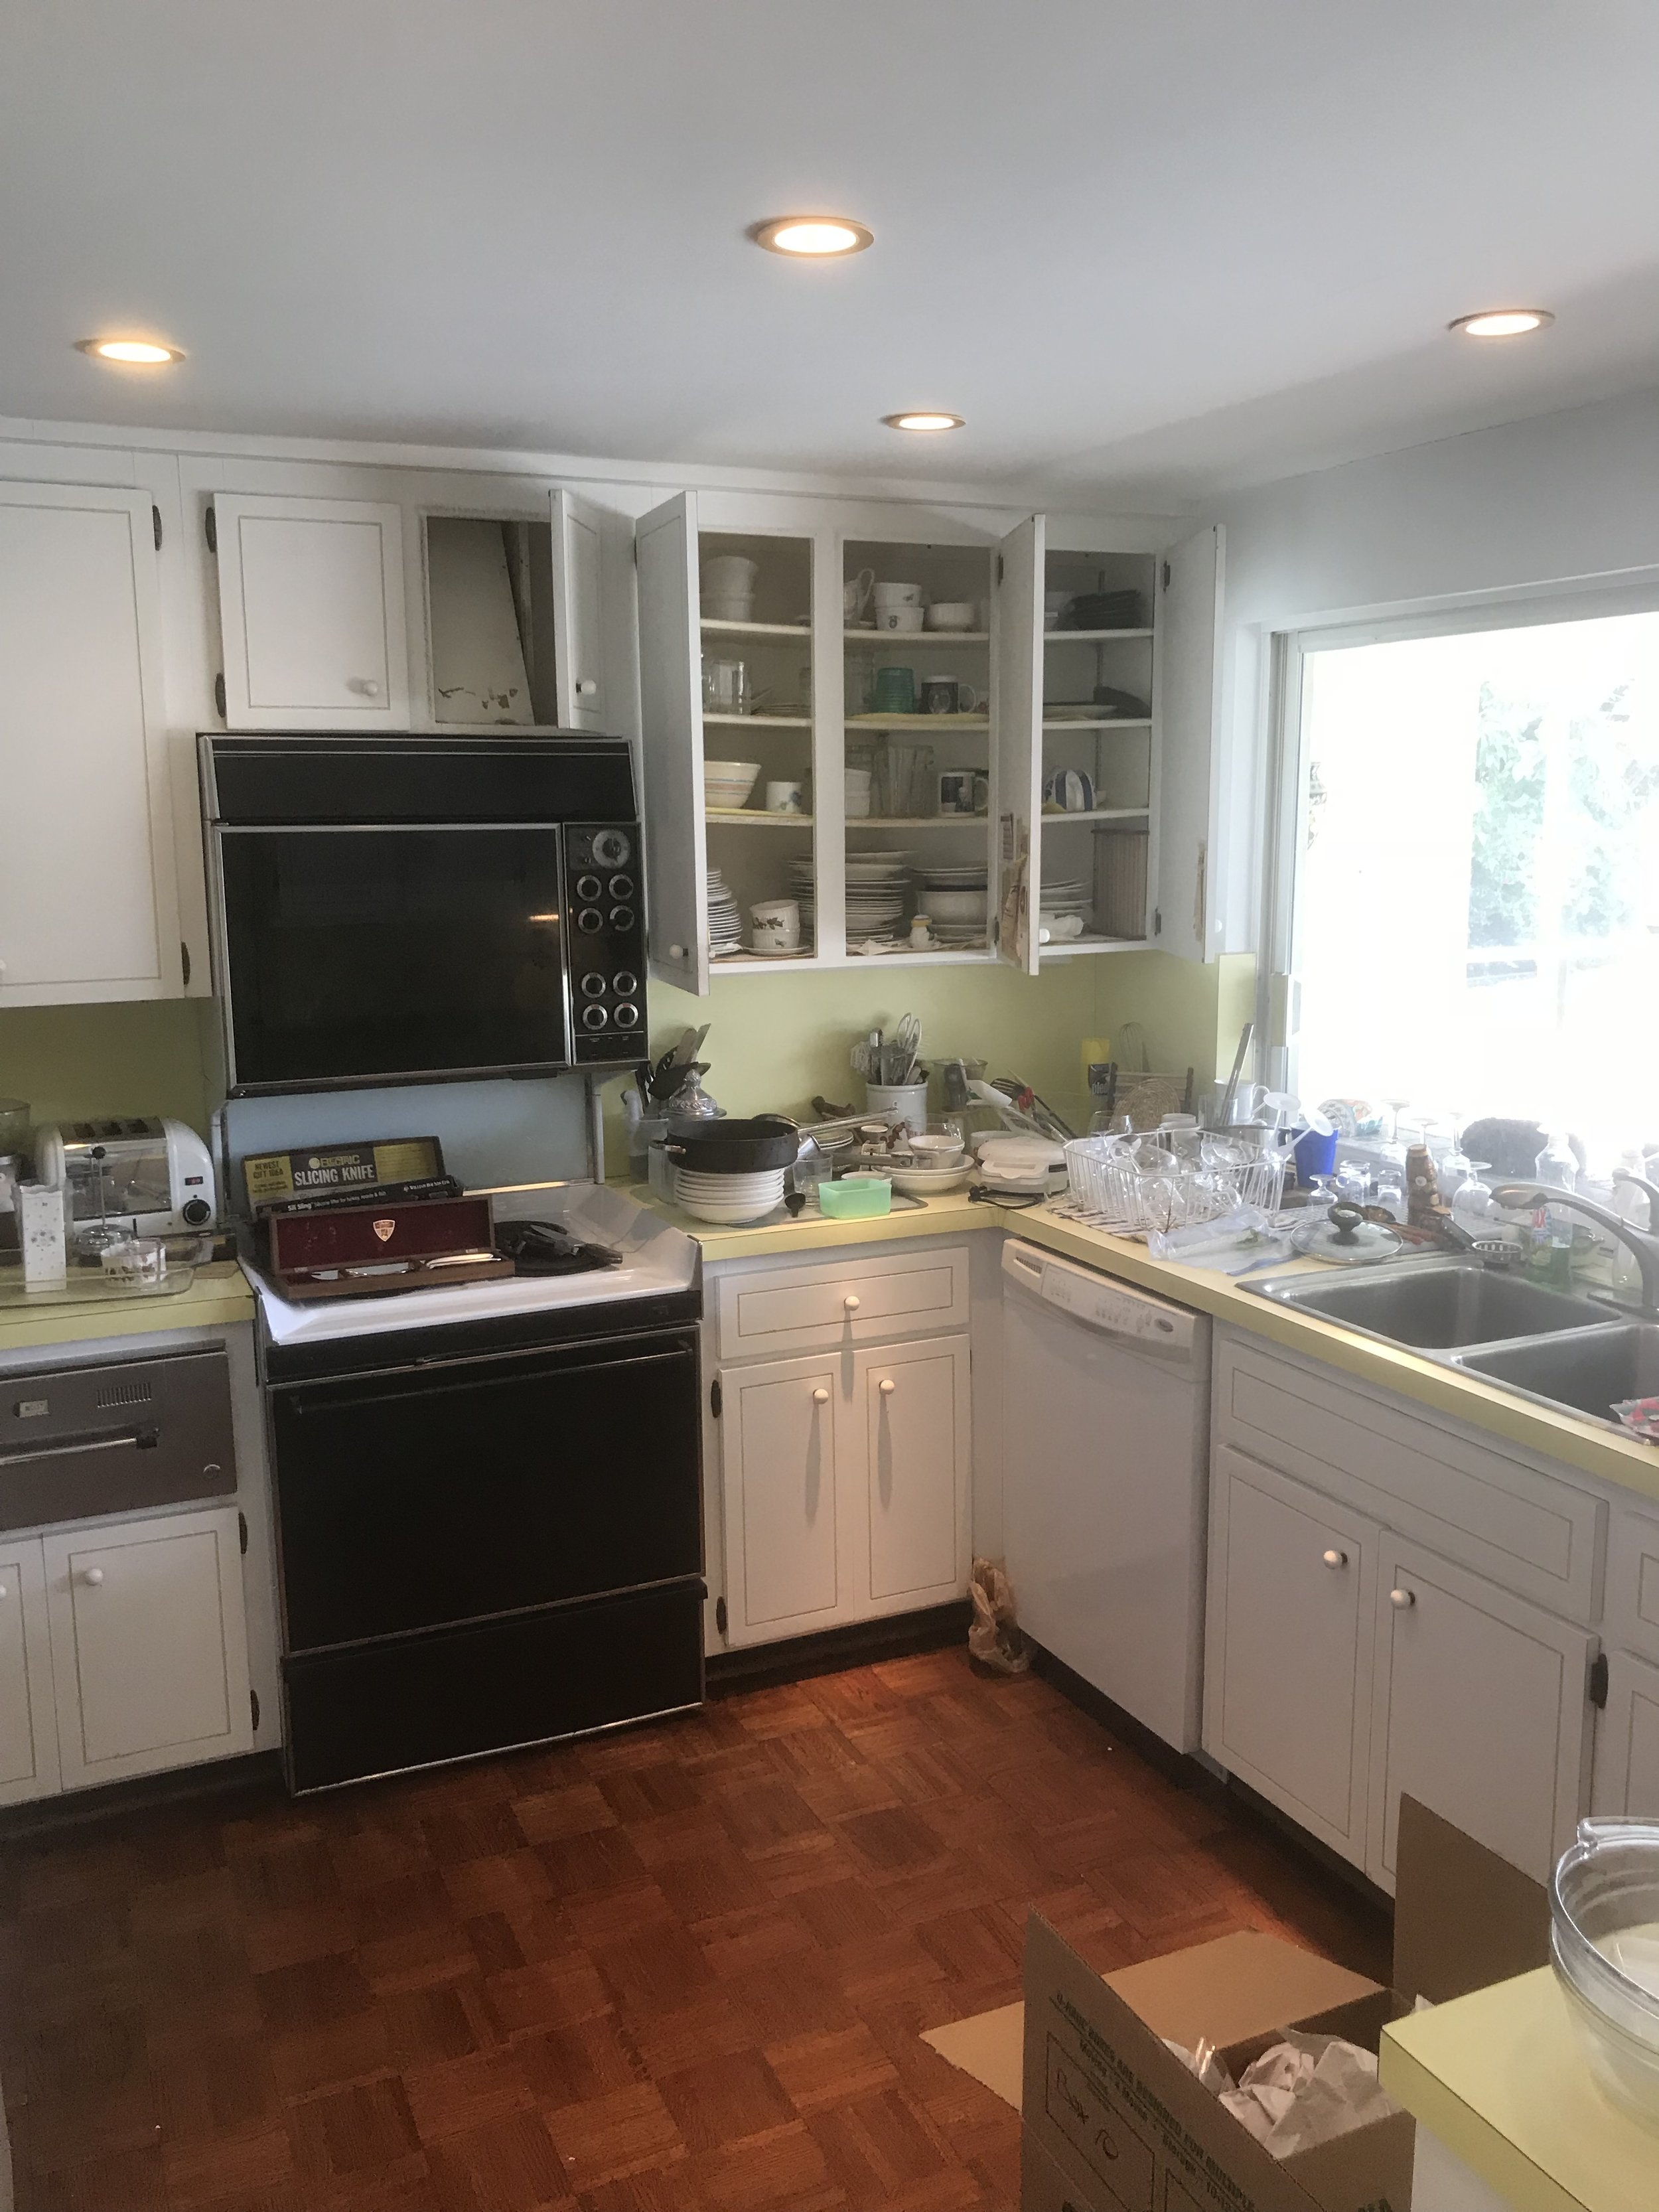 The vintage kitchen ;). Total remodel (still working on the layout) but hoping for a large island and potentially carrying the glass doors into the kitchen area to make the entire back of the house floor to ceiling glass doors.